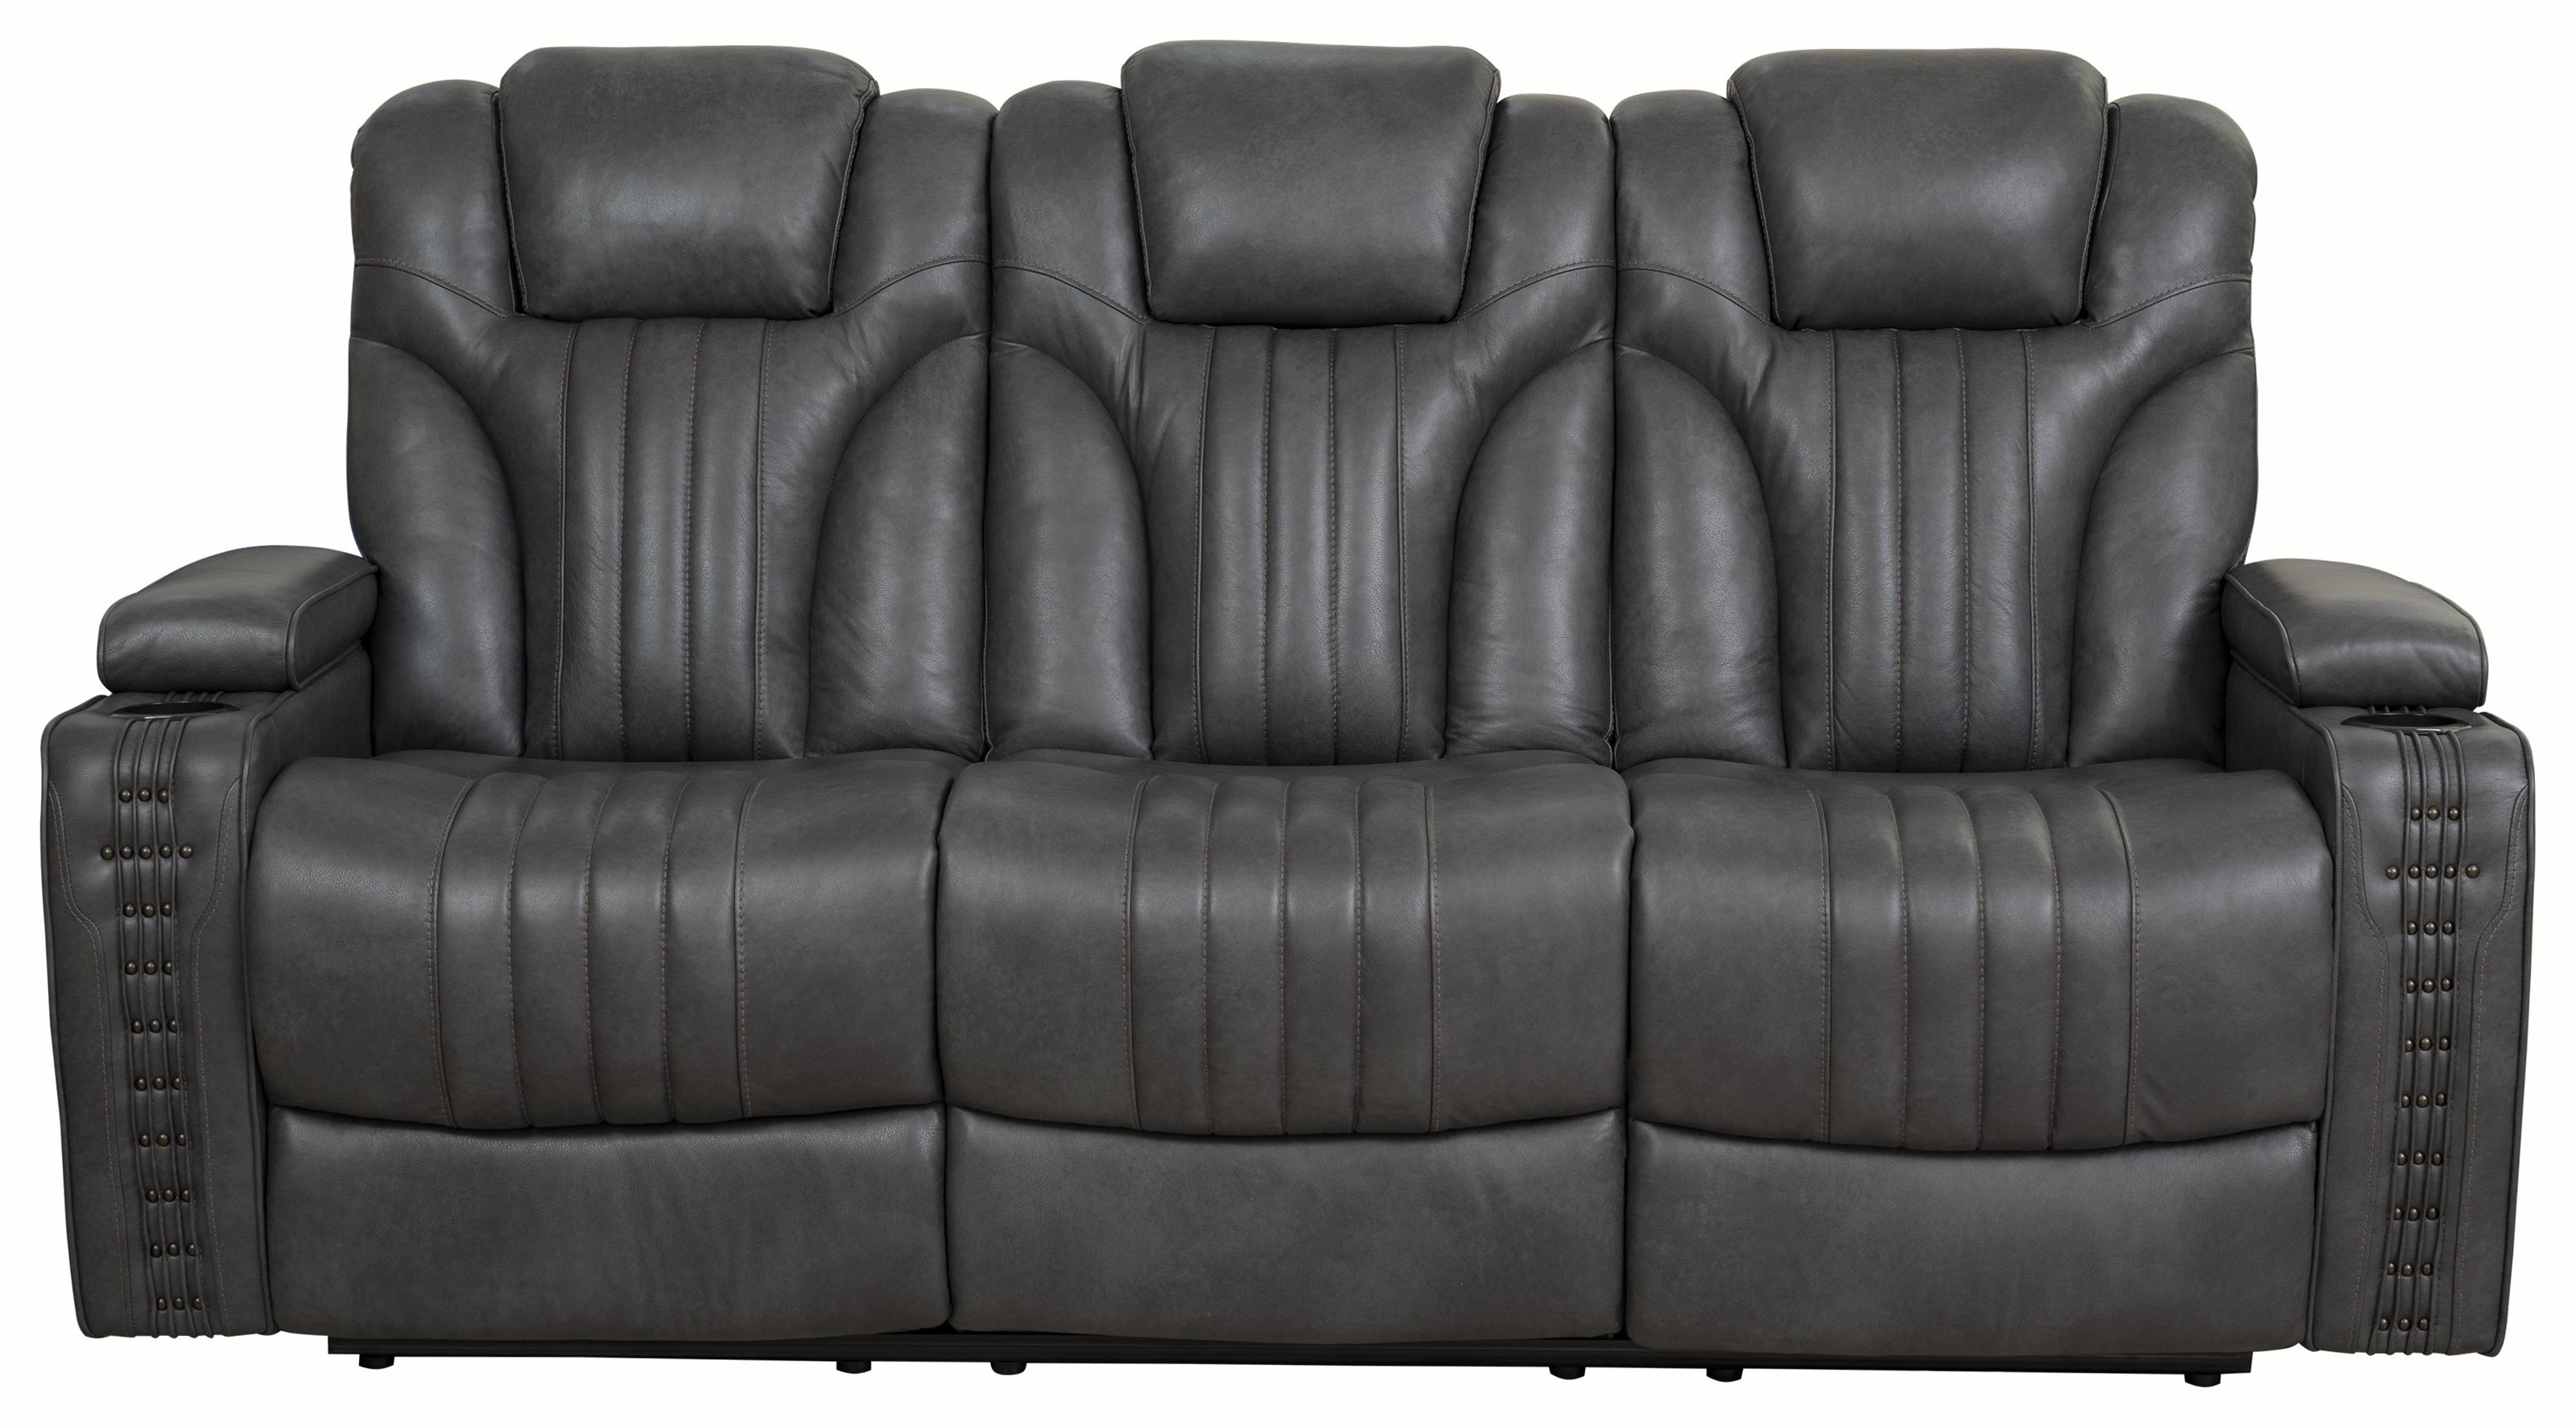 Boone Boone Leather Match Power Sofa by Prime Resources International at Morris Home